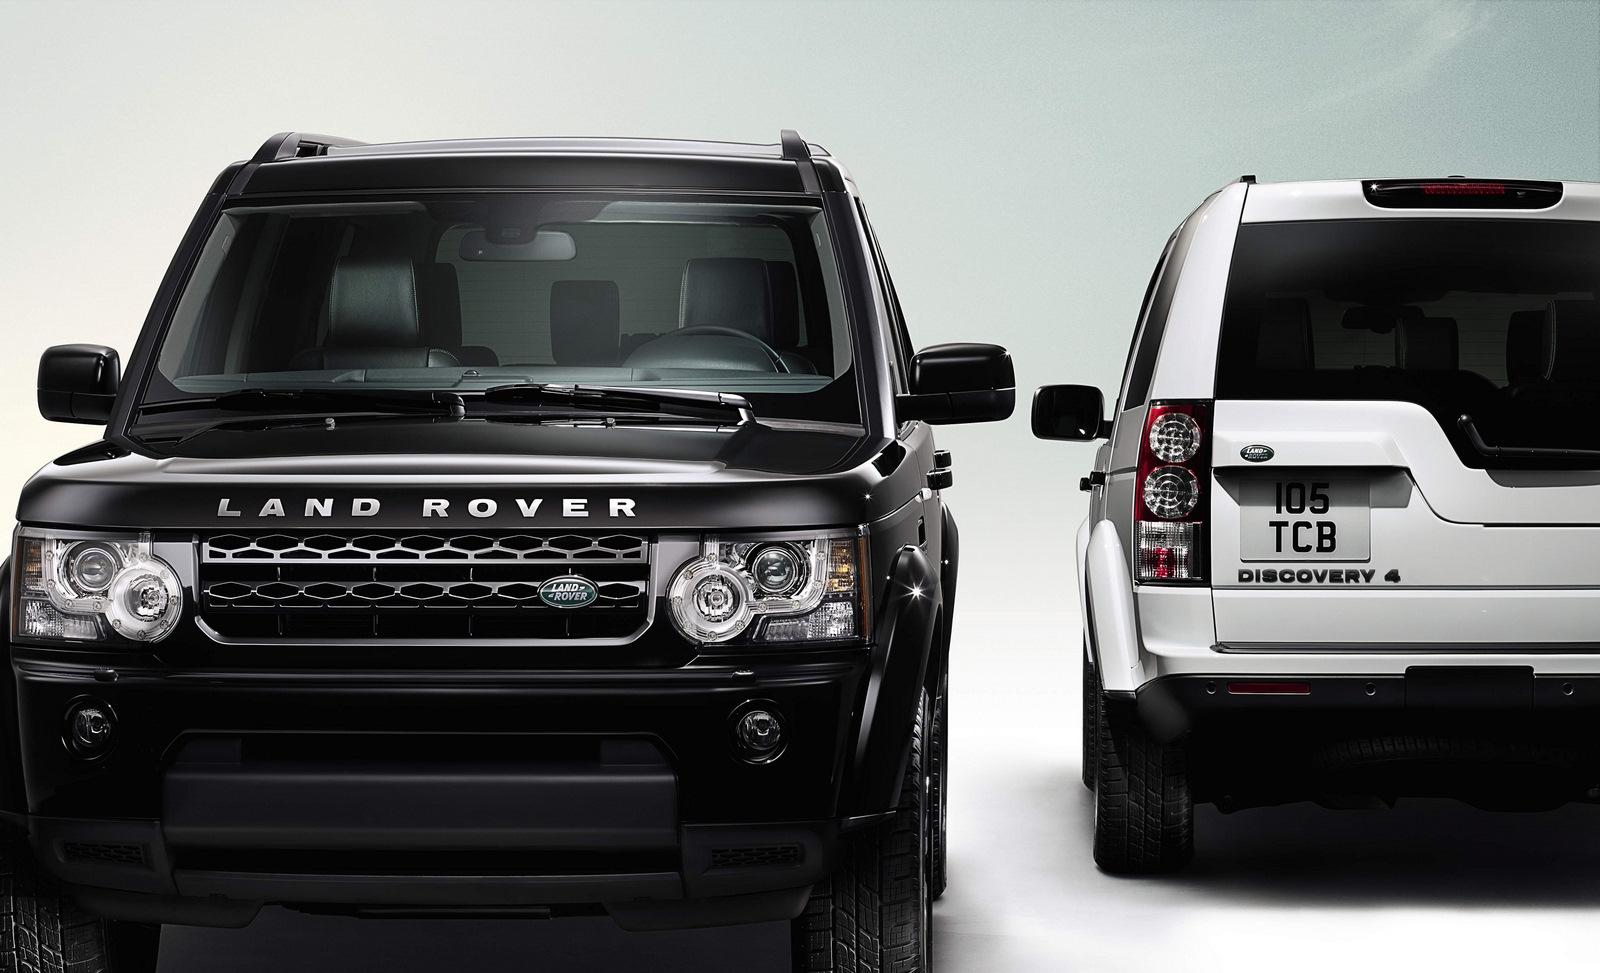 https://www.automobilesreview.com/gallery/2011-land-rover-discovery-4-landmark-special-edition/2011-land-rover-discovery-4-landmark-special-edition-01.jpg